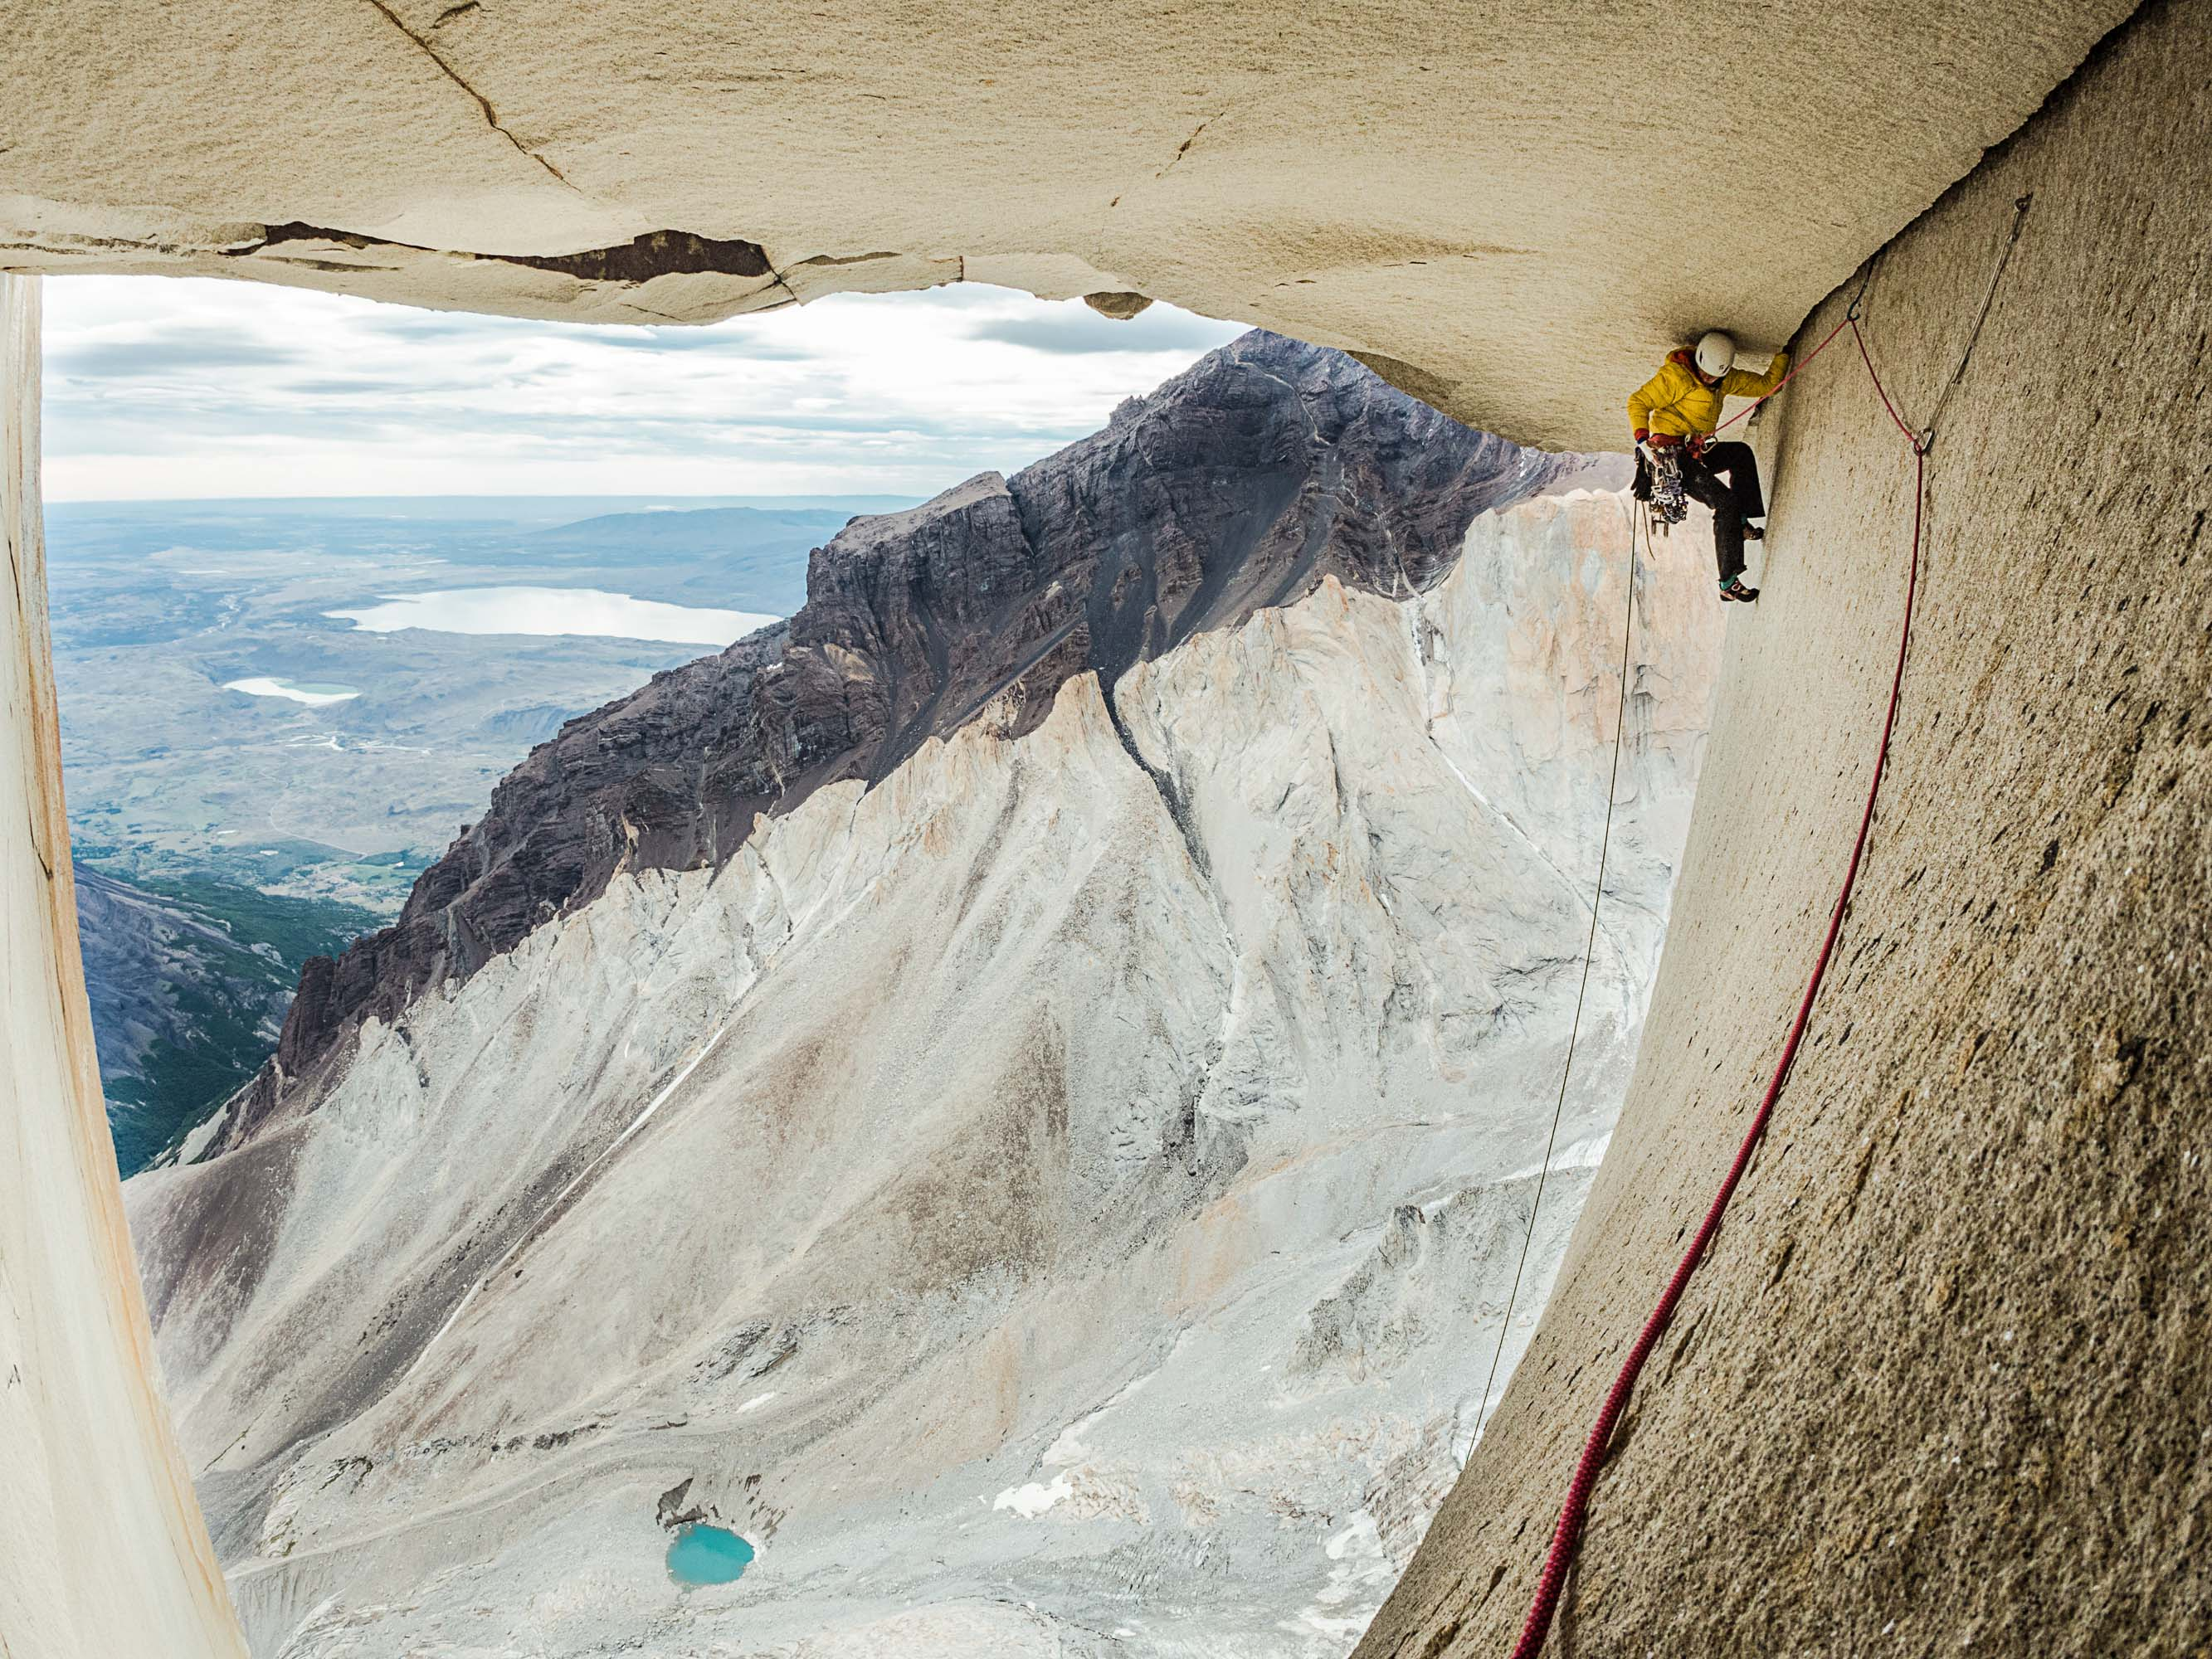 """Ines Papert climbing """"The Rosendach"""" pitch 27 of the route Riders on the storm in Torres del Paine. PHOTO: THOMAS SENF"""